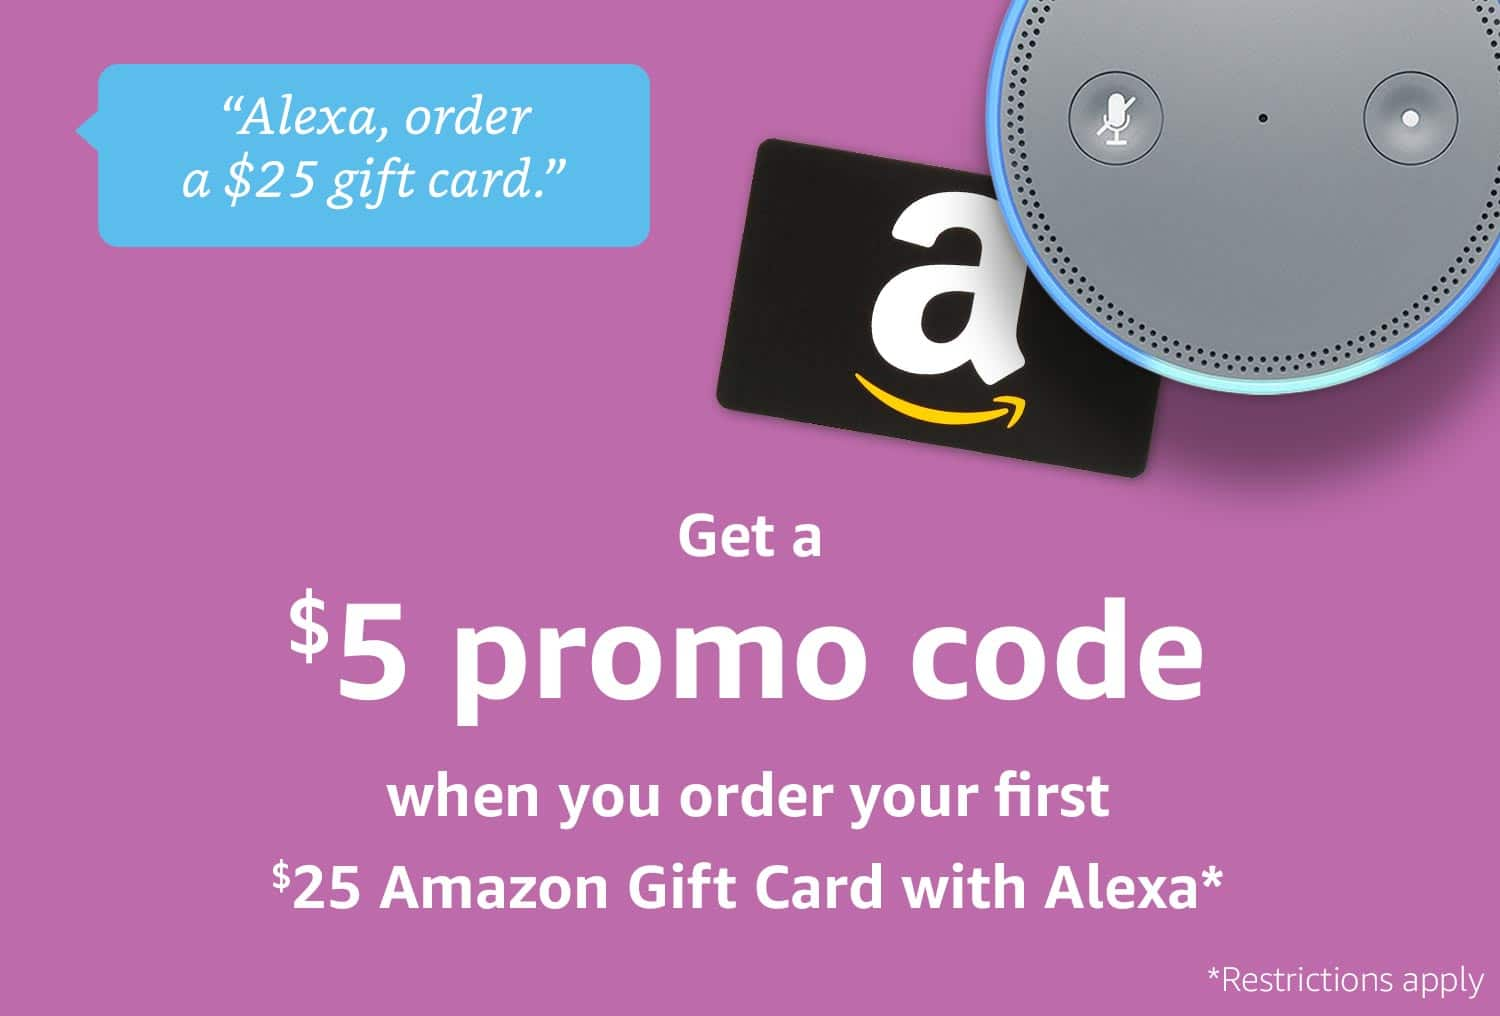 Get a $5 promo code when you order your first $25 Amazon Gift Card with Alexa*